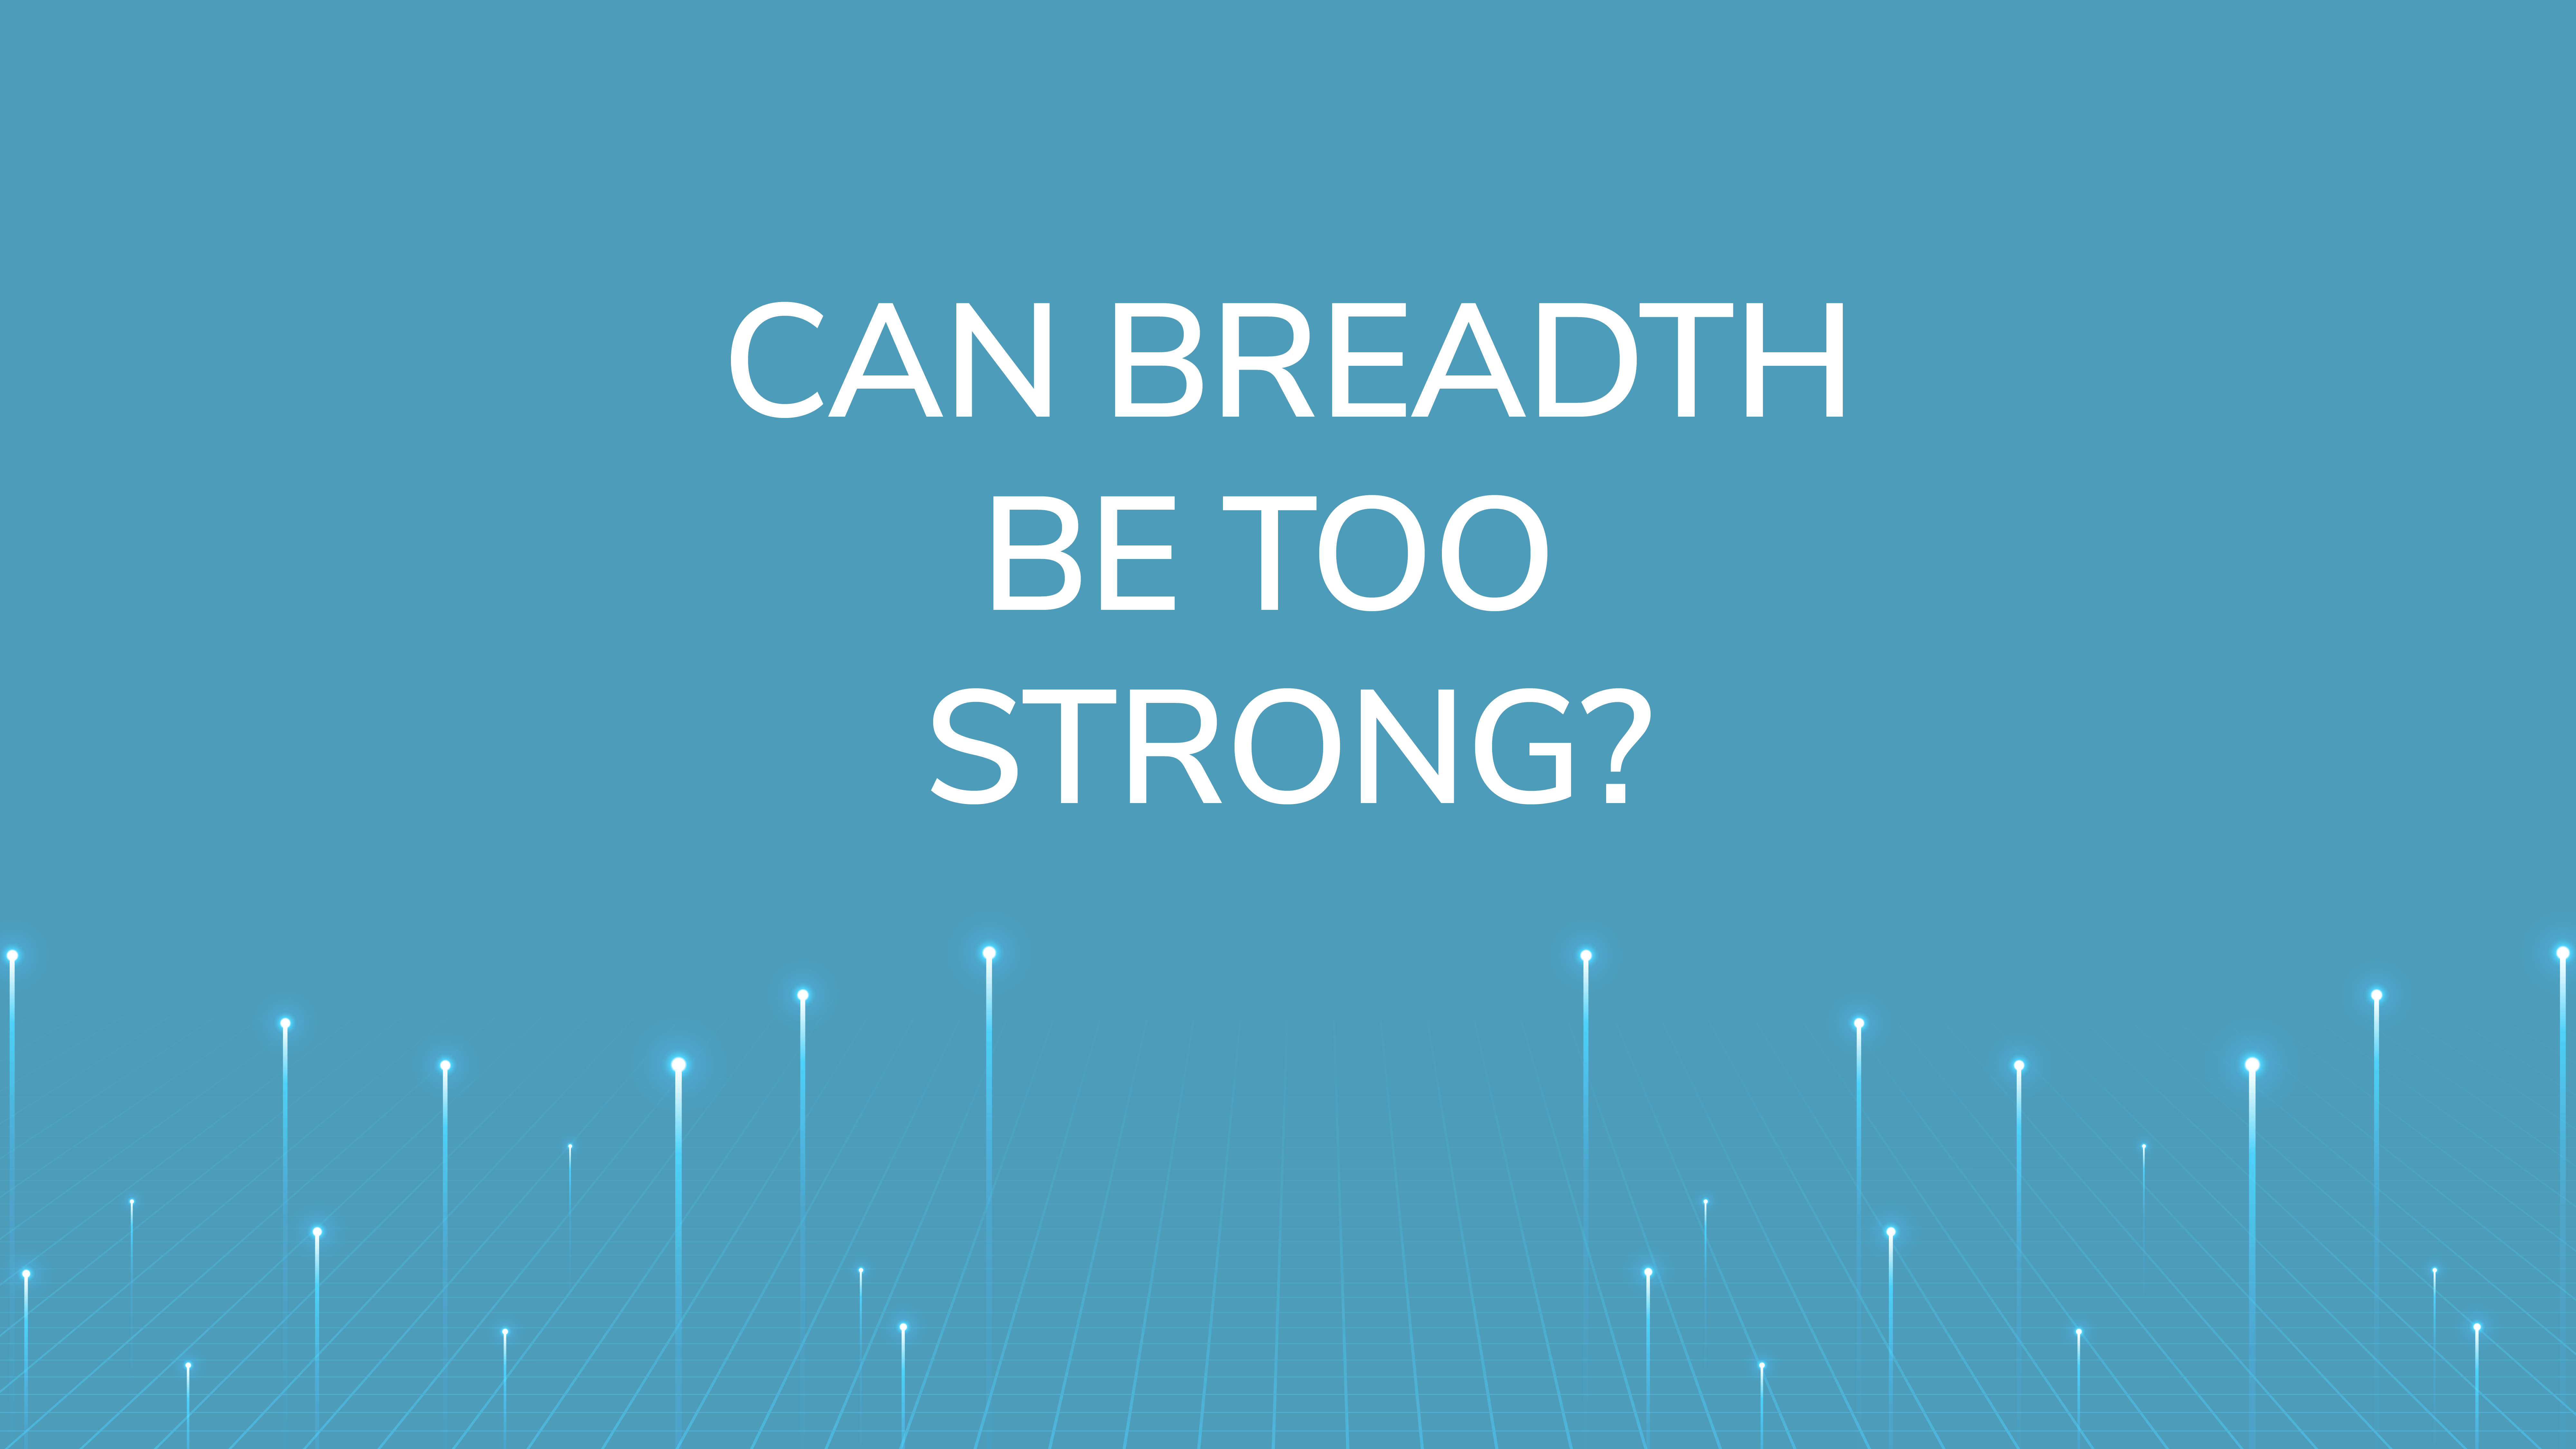 Can Breadth Be Too Strong?